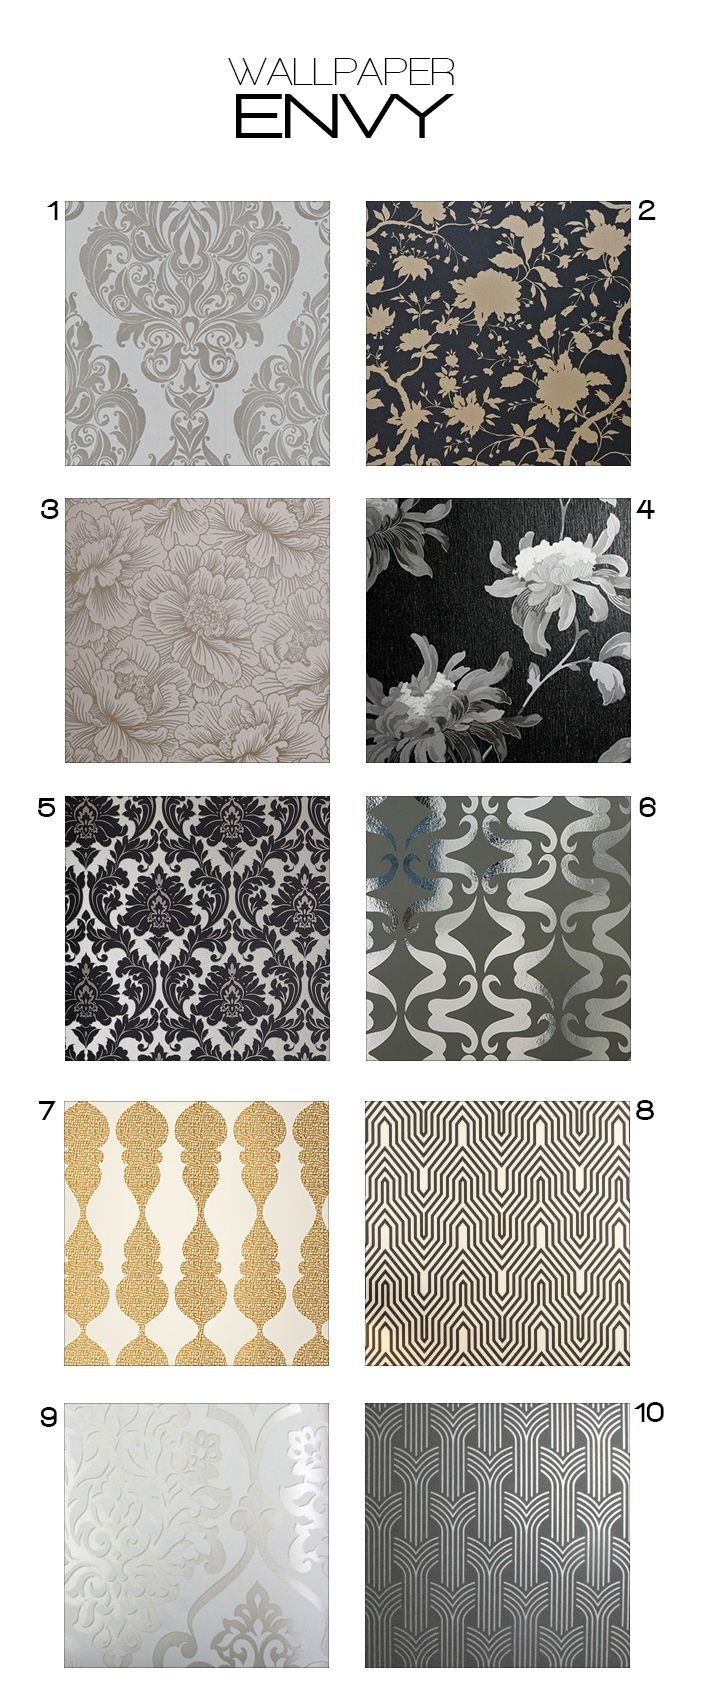 I am going with #5! Glamorous wallpaper for your home